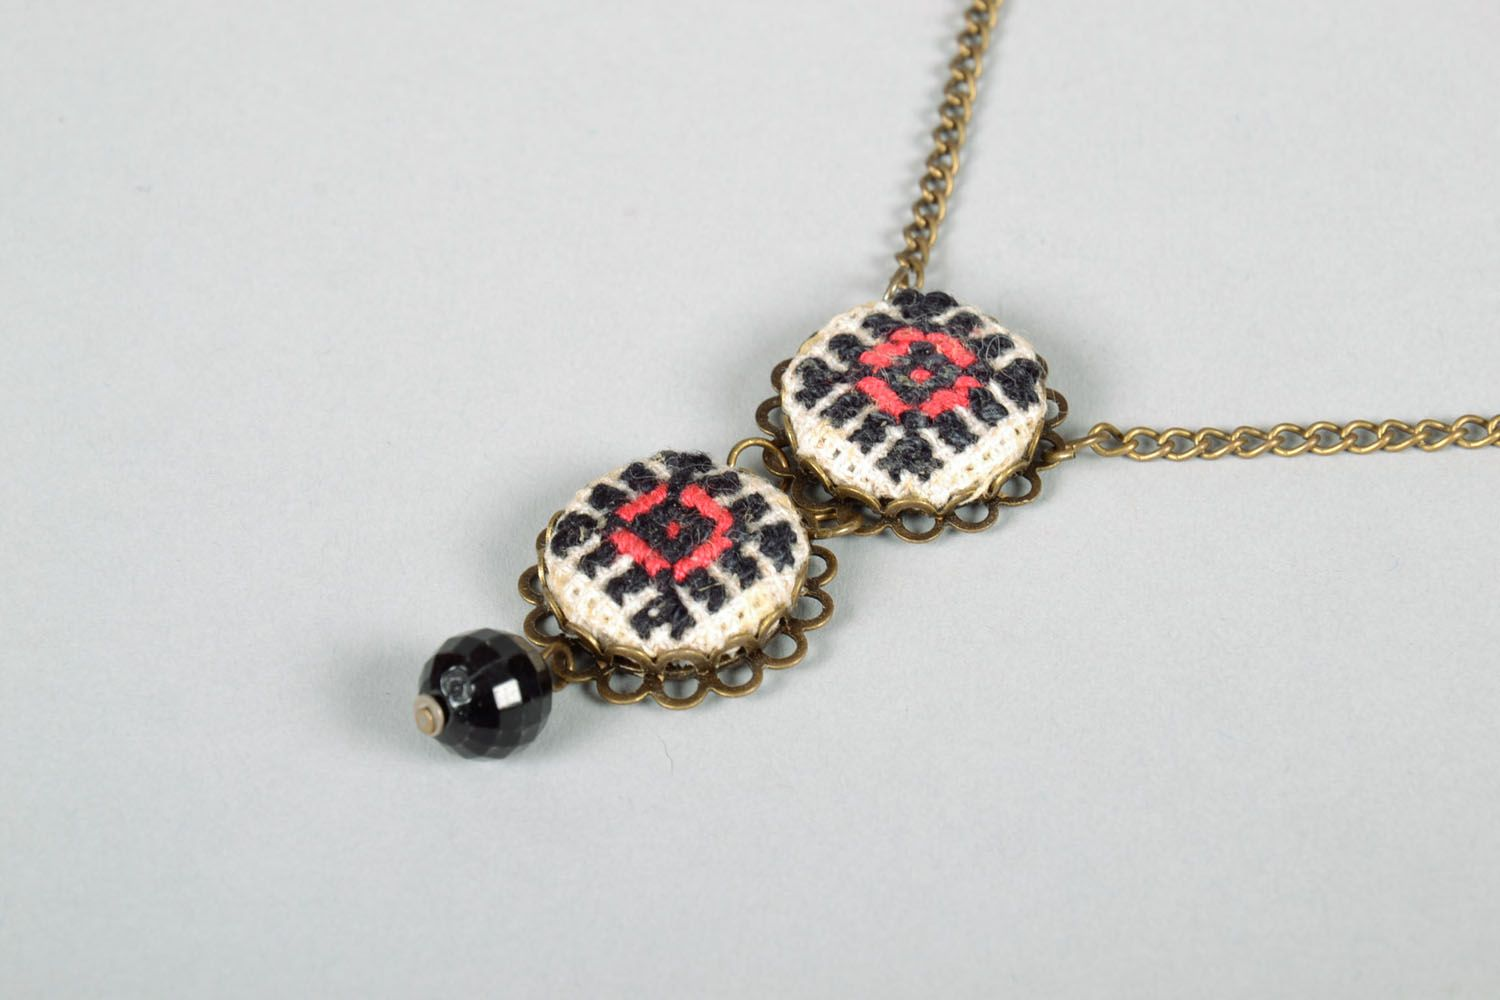 Pendant on a chain photo 3